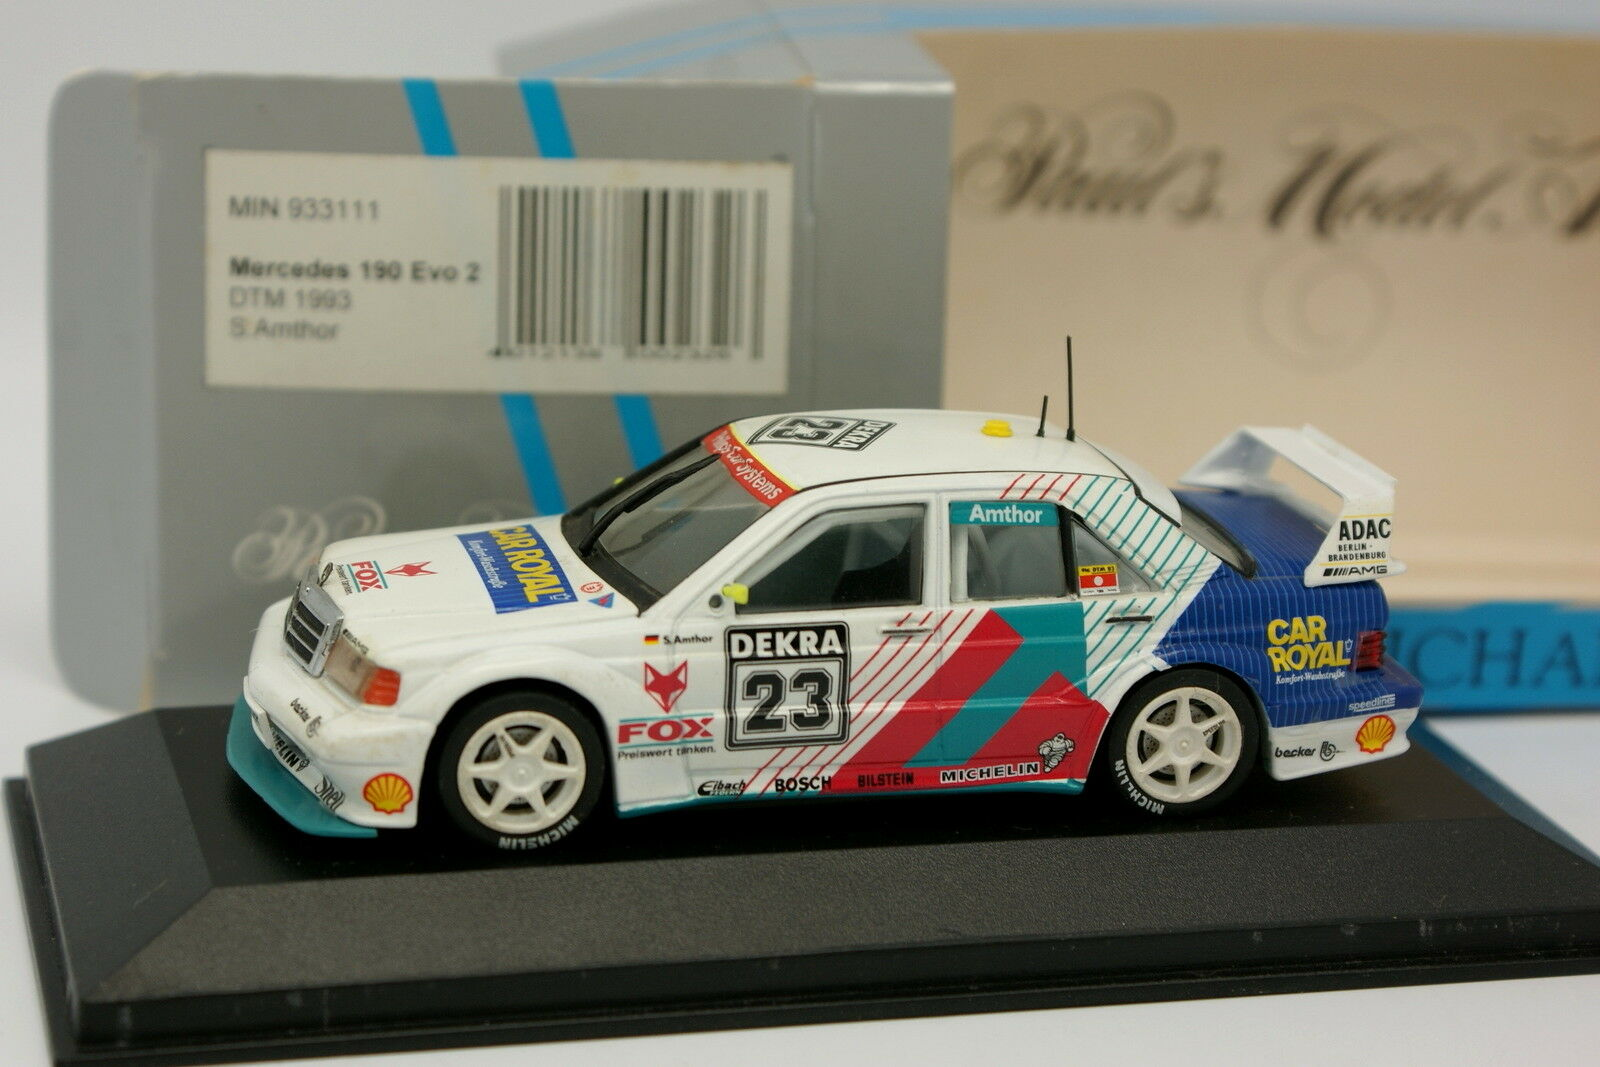 Minichamps 1 43 - Mercedes 190 Evo 2 DTM 1993 Amthor